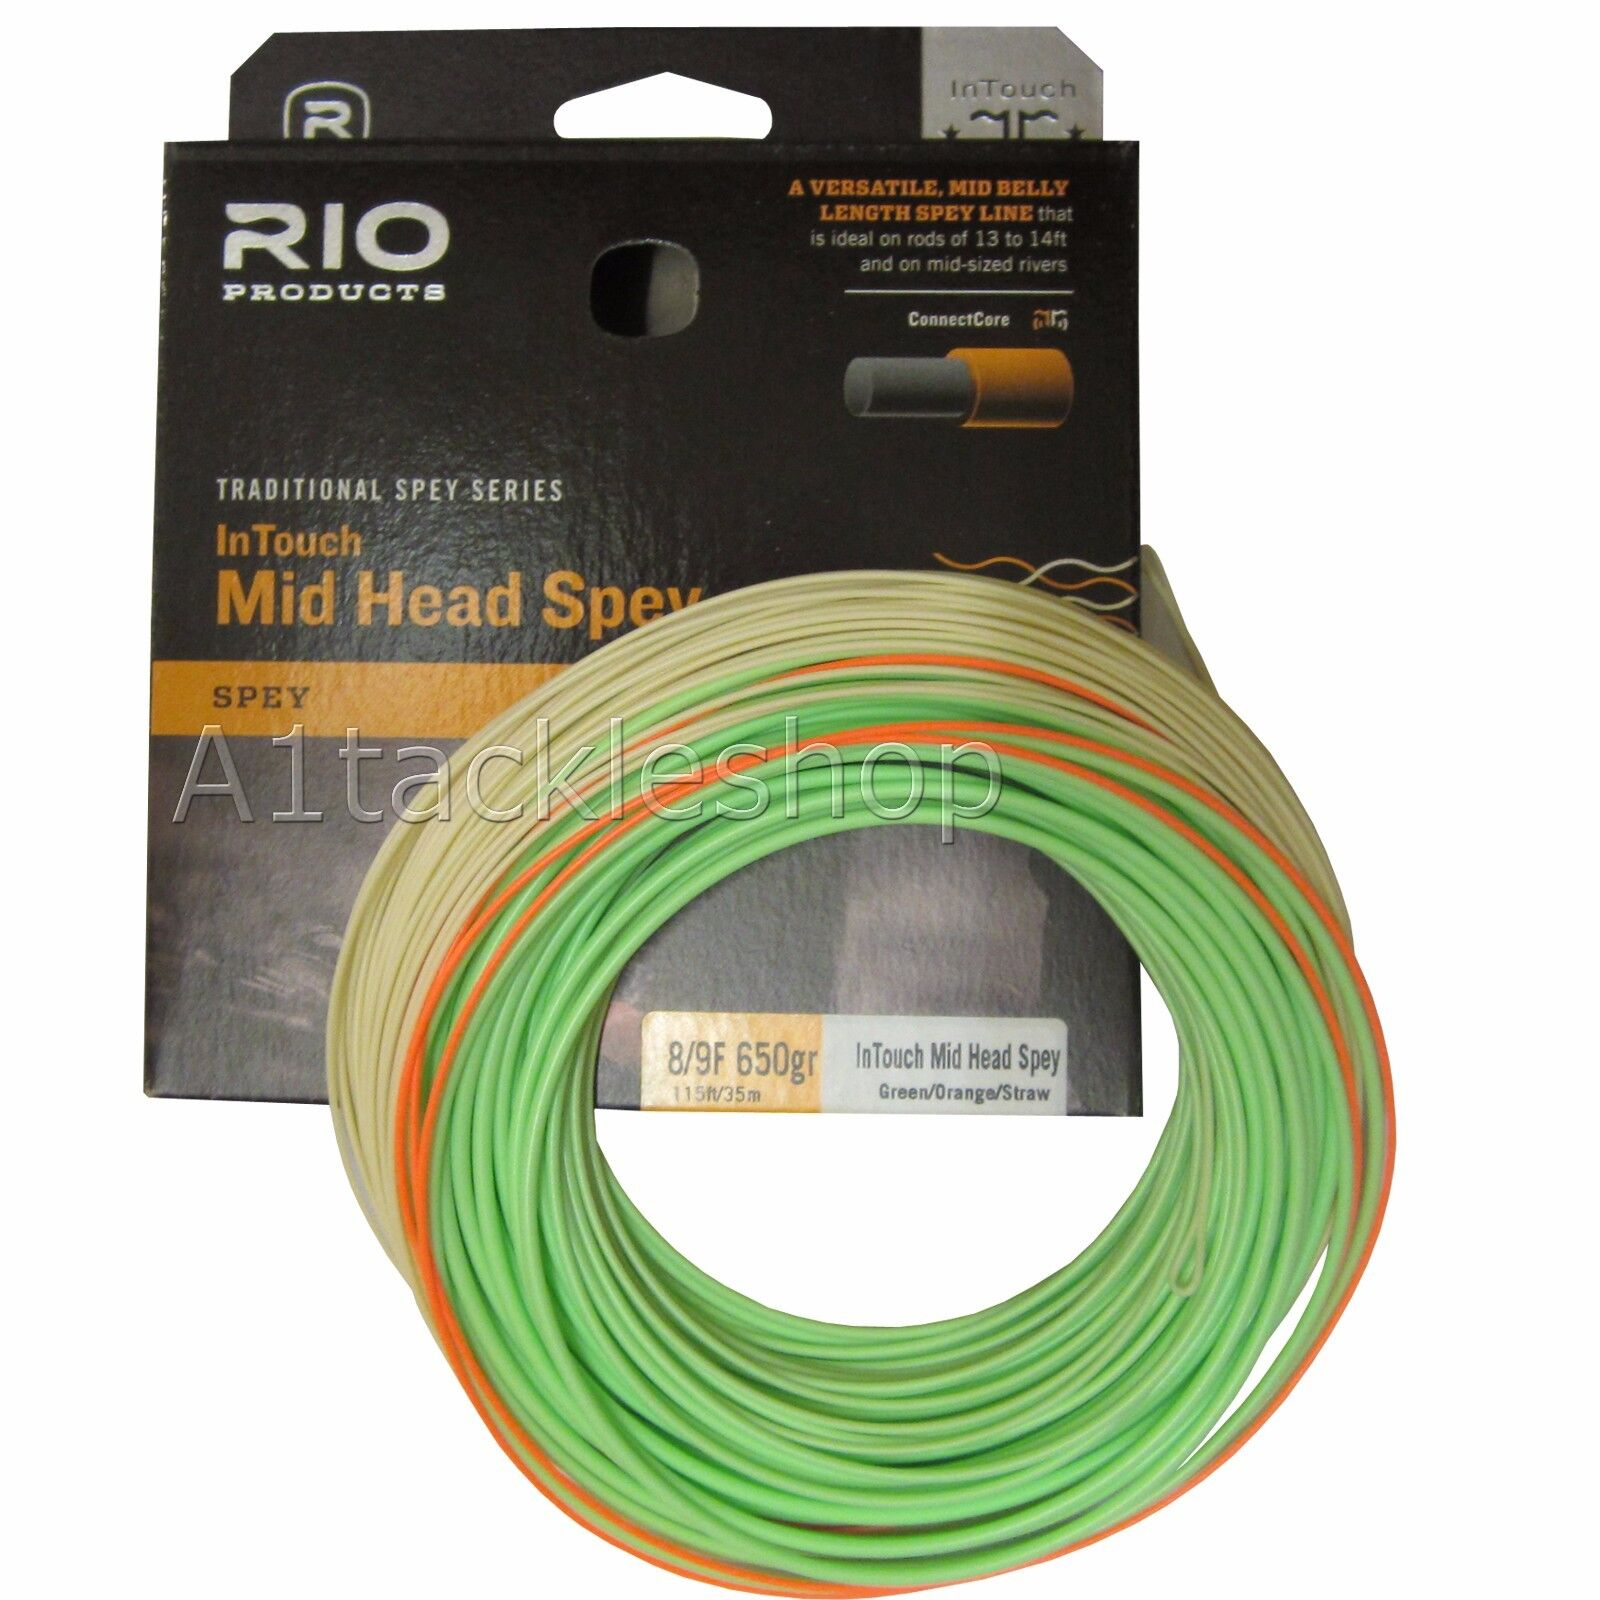 Rio In Touch Mid Head Spey Fly Line